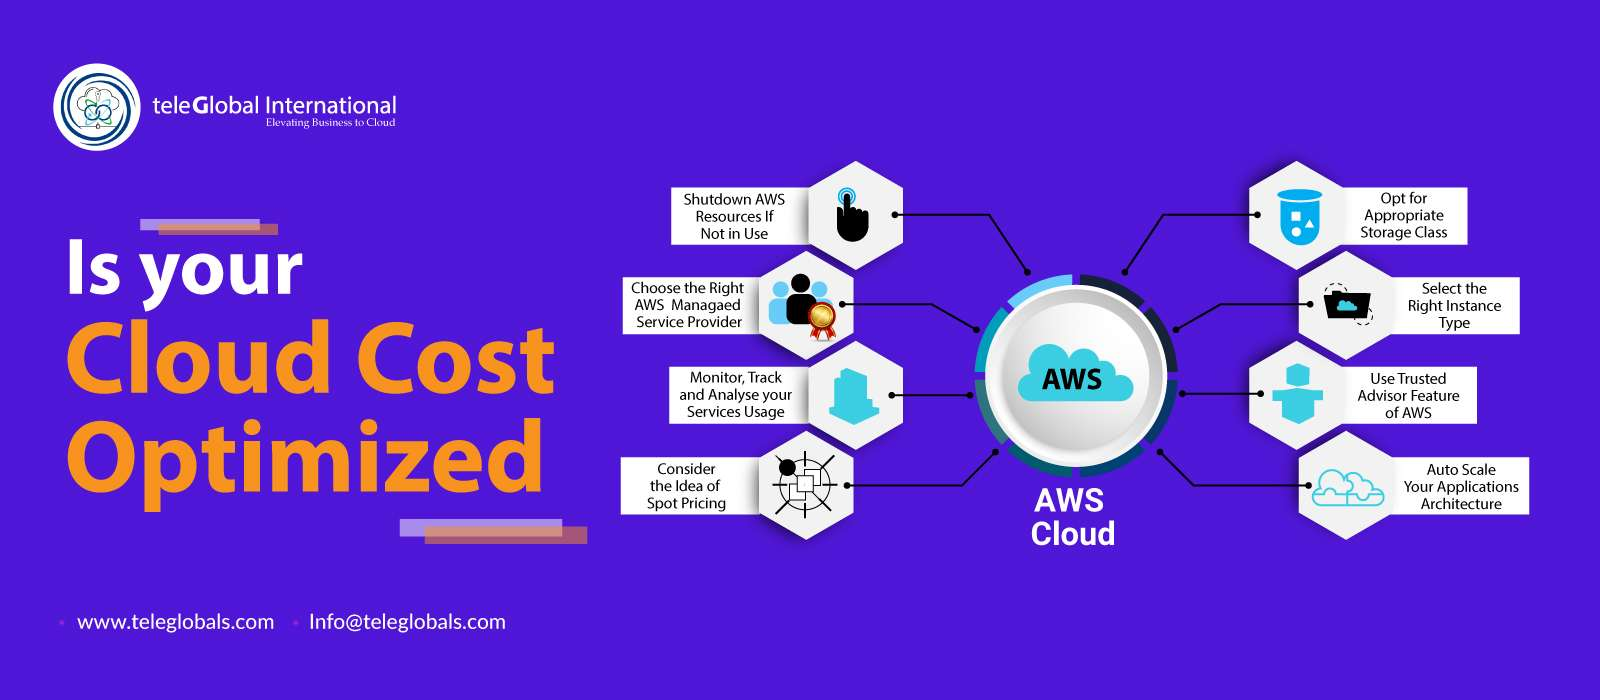 How to optimize costs while managing AWS cloud